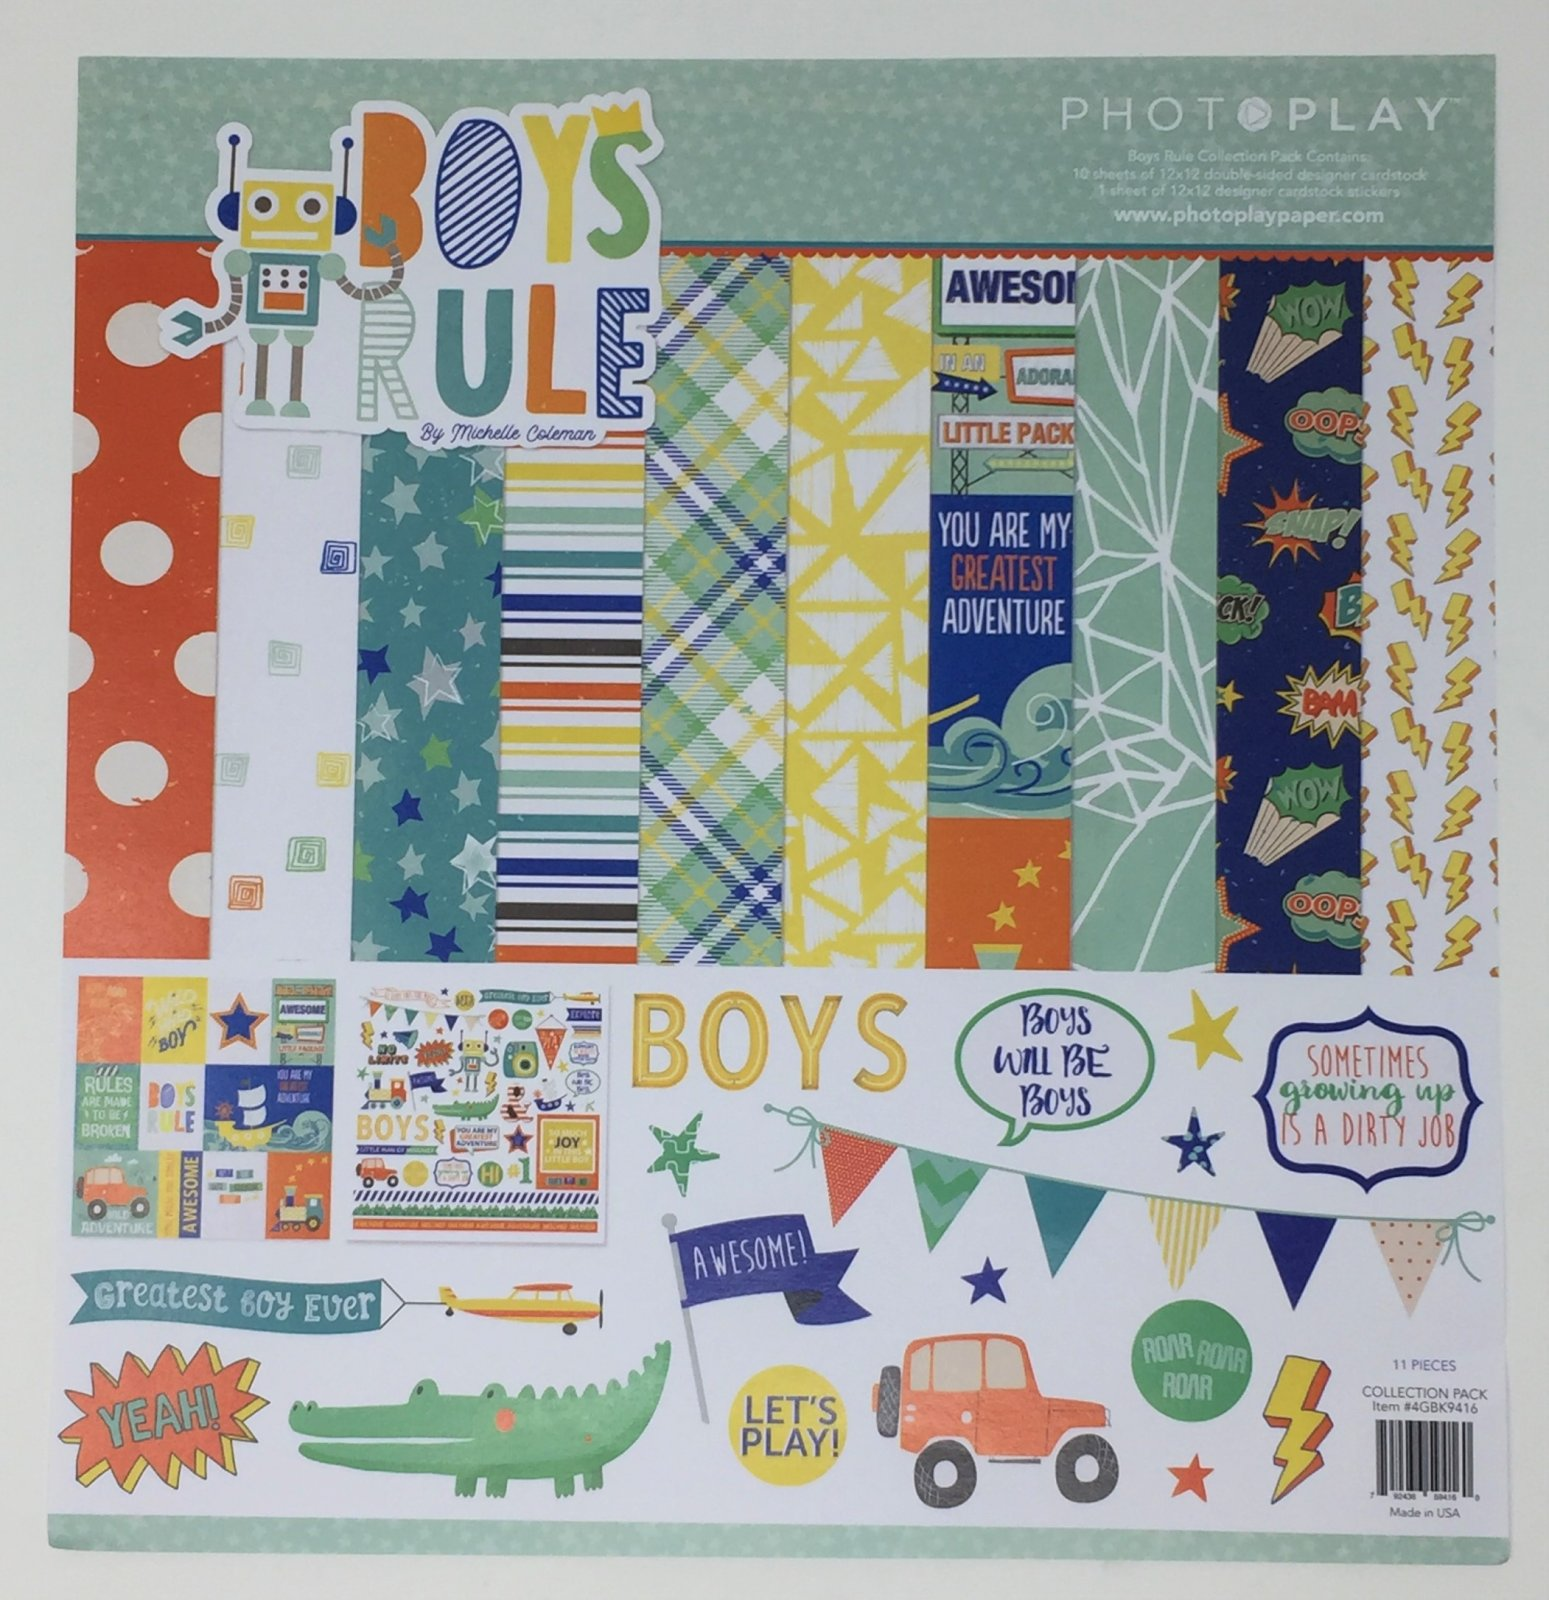 ^PhotoPlay Boys Rule - 12x12 Value Collection Pack